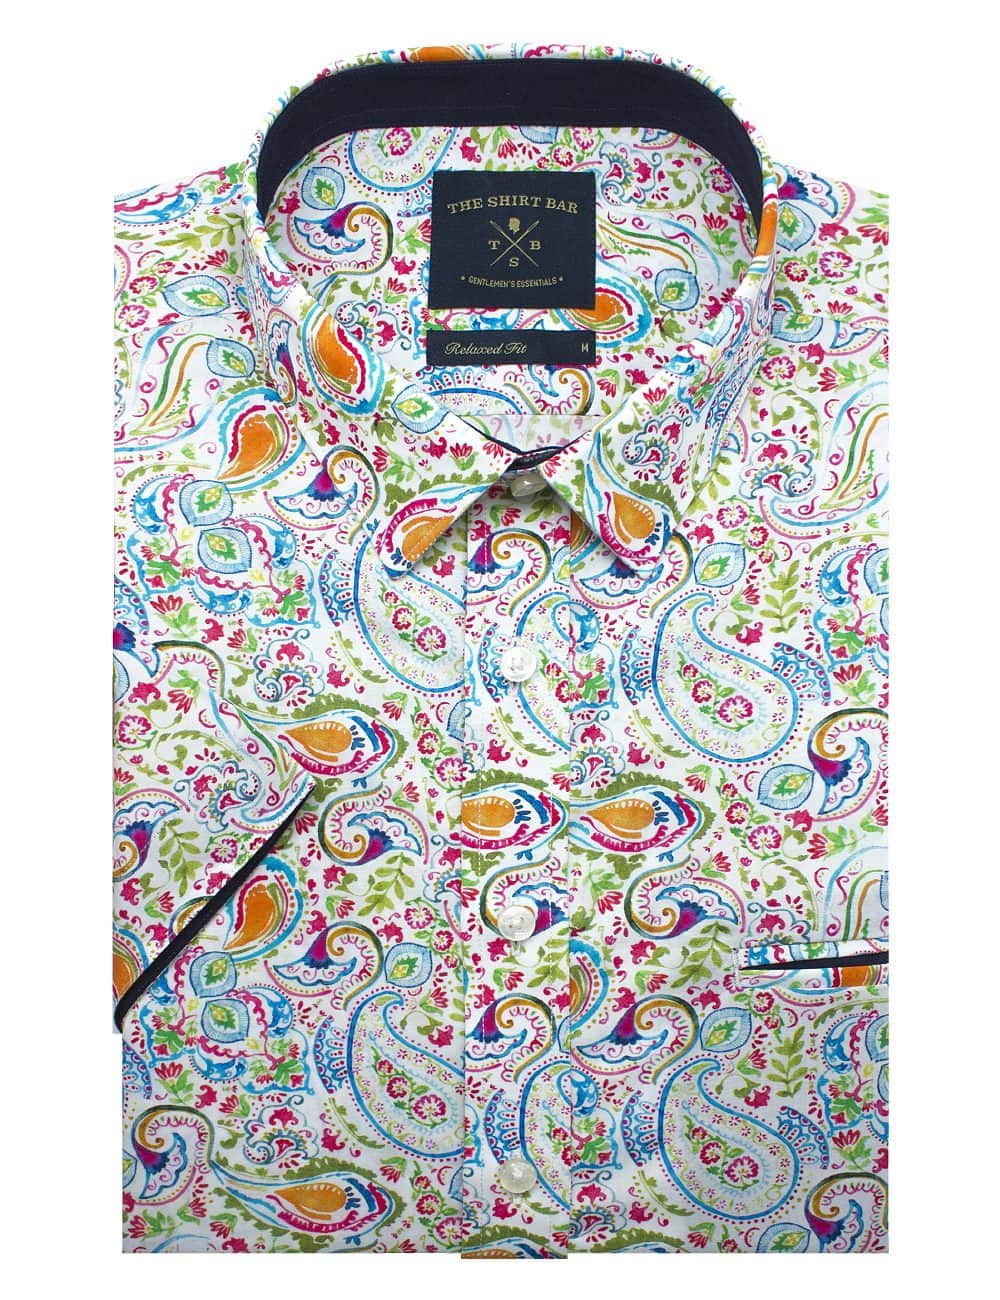 White with Green Paisley Print Silky Finish Relaxed Fit Short Sleeve Shirt - RF9SNB2.18